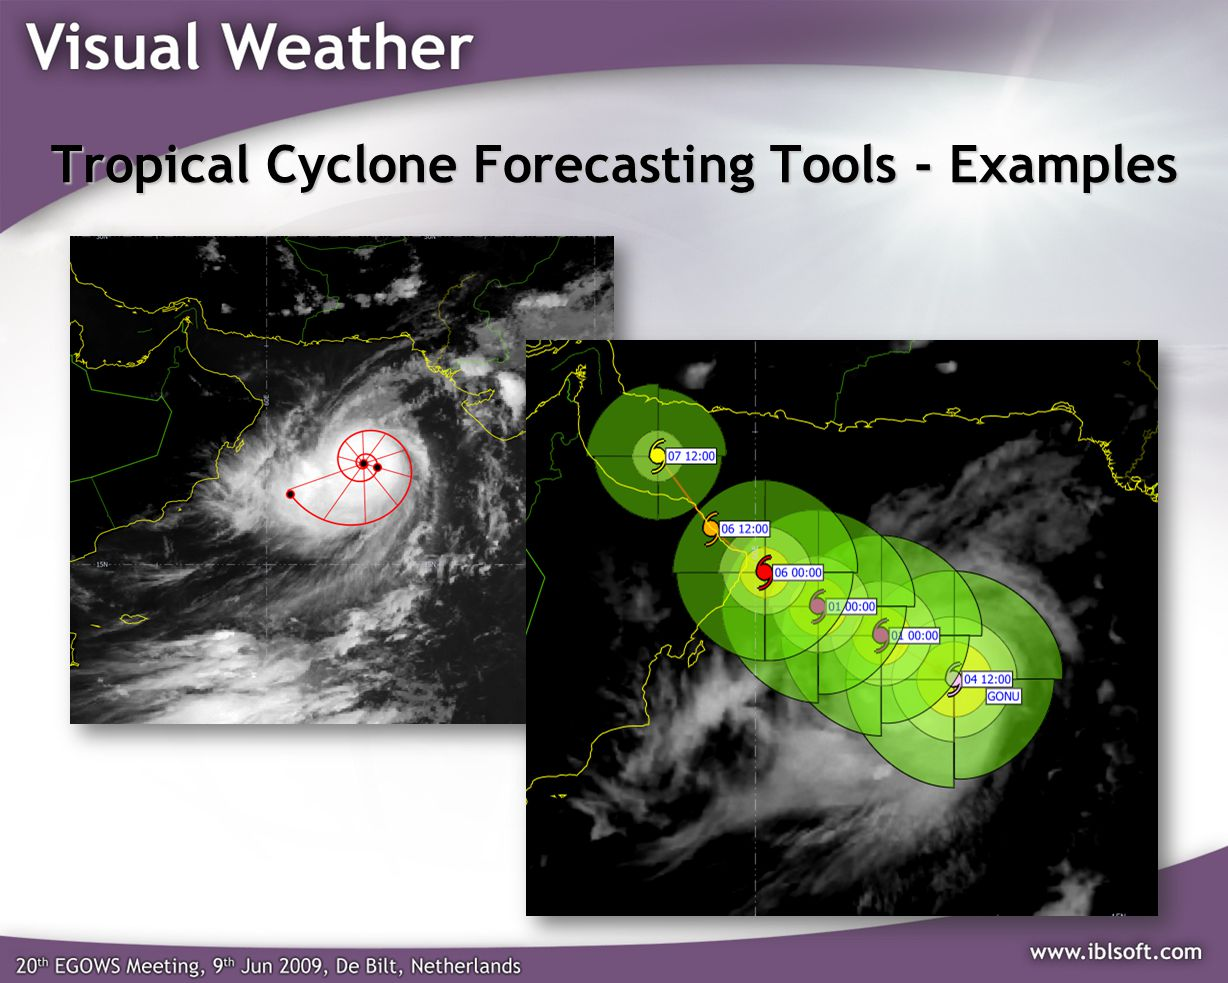 Tropical Cyclone Forecasting Tools - Examples